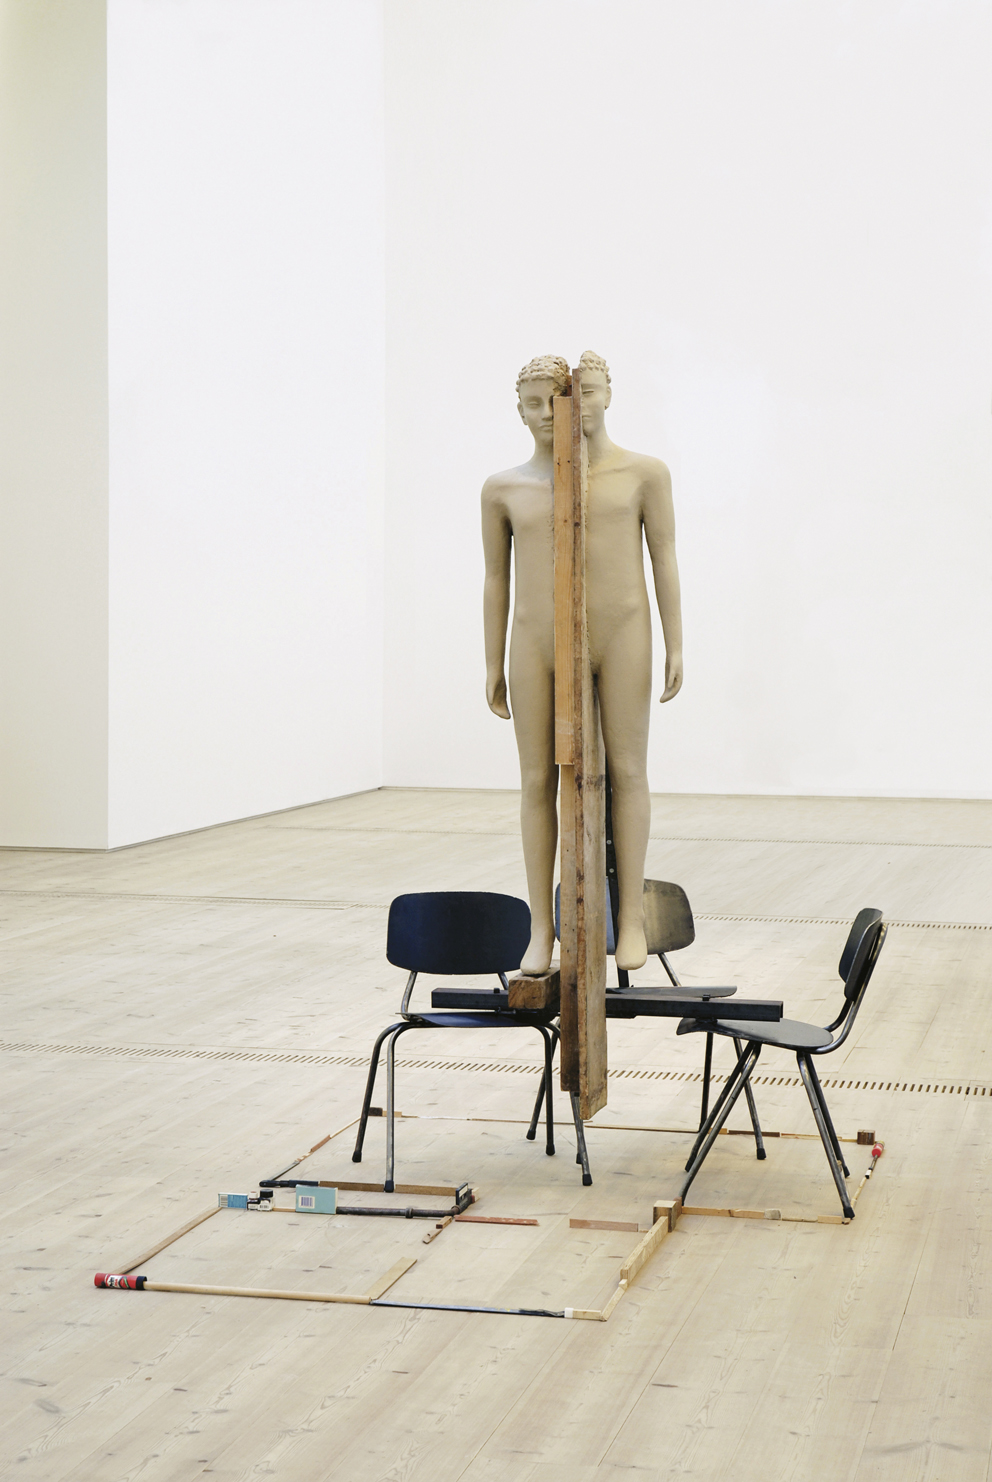 Mark Manders, Unfired Clay Figure, 2005-2006